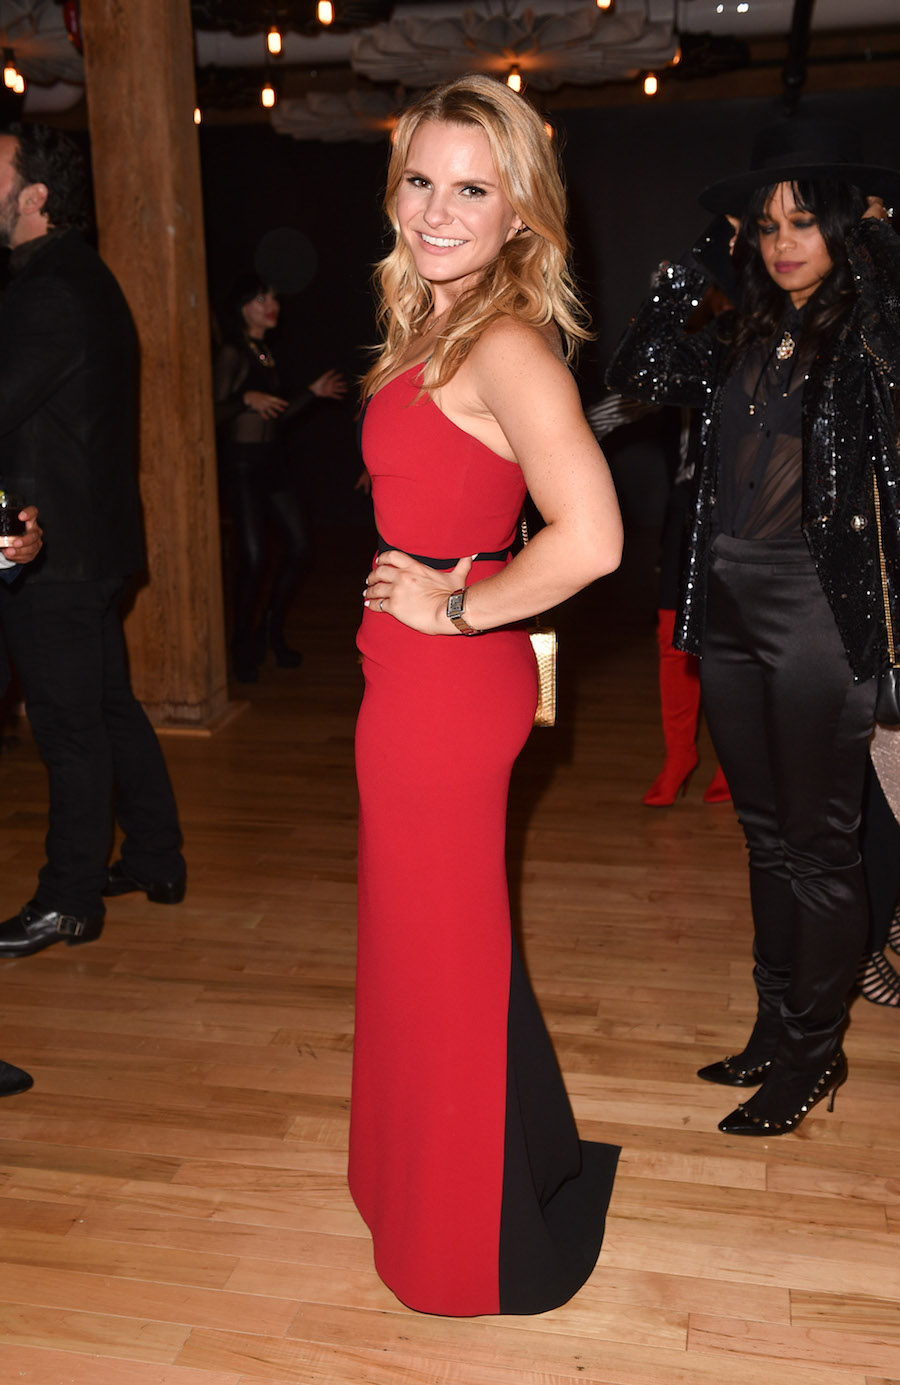 Michele Romanow at the IT House x Producers Ball (Photo: Courtesy of NKPR) | View the VIBE